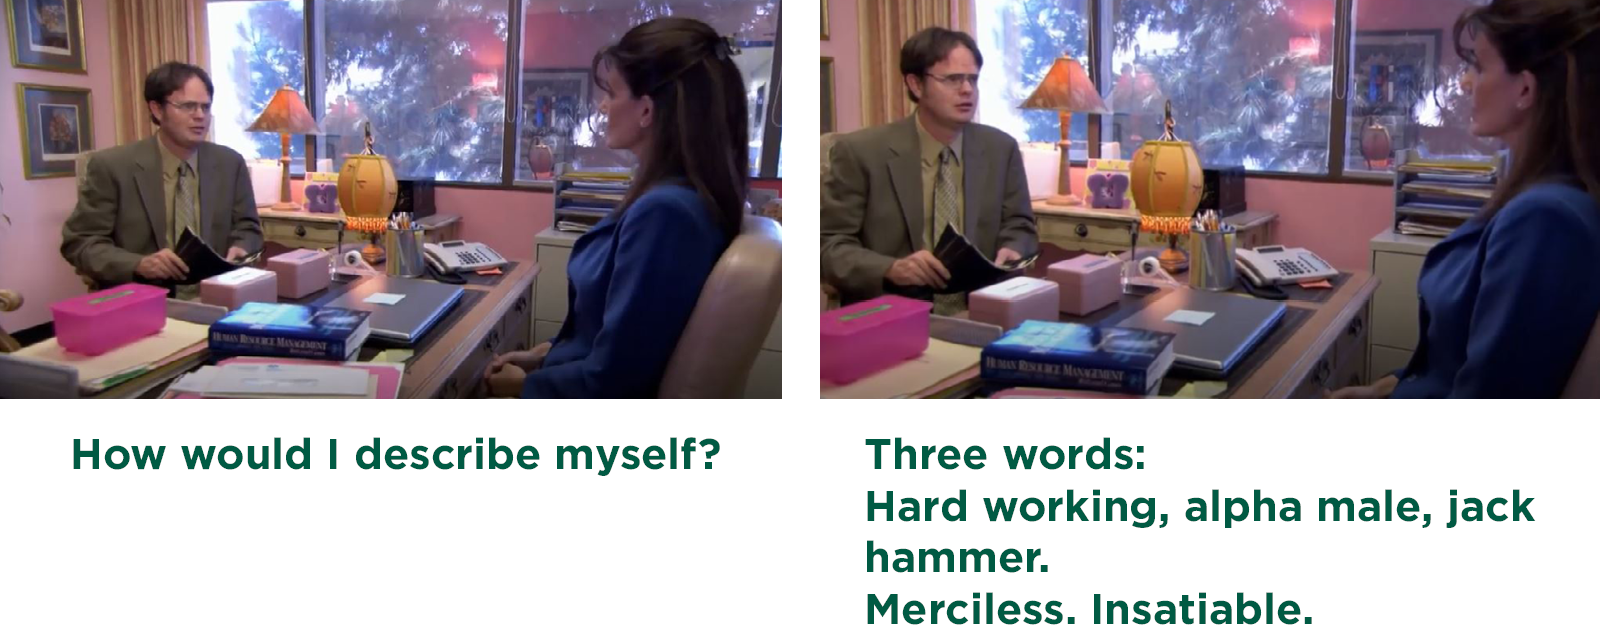 How would I describe myself during an interview?